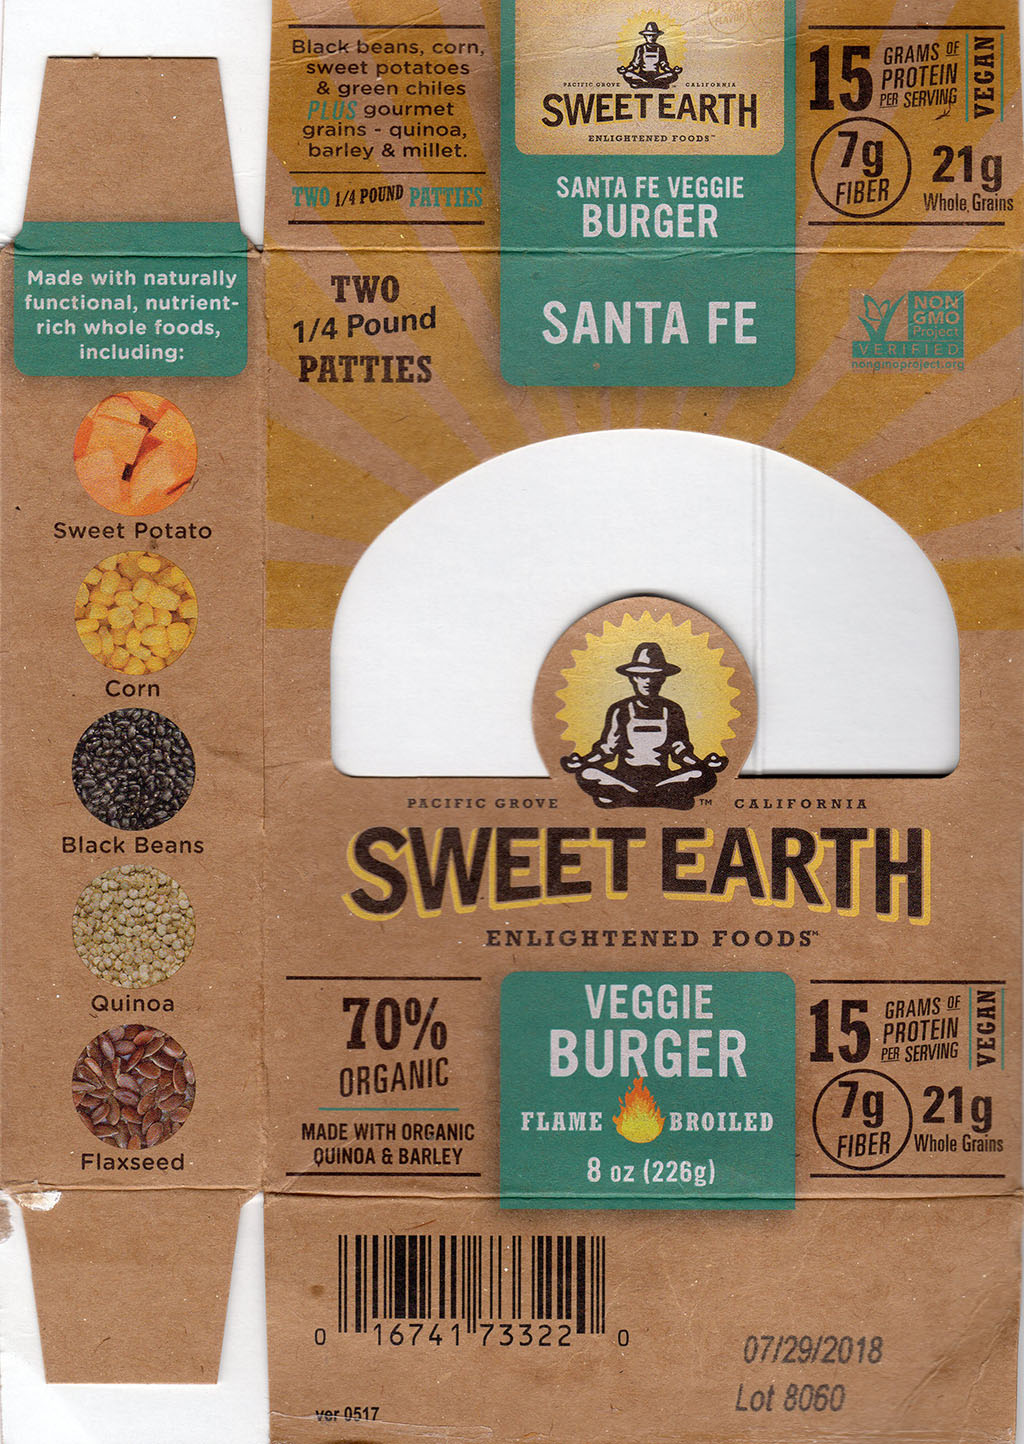 Sweet Earth Sante Fe Veggie Burger package front